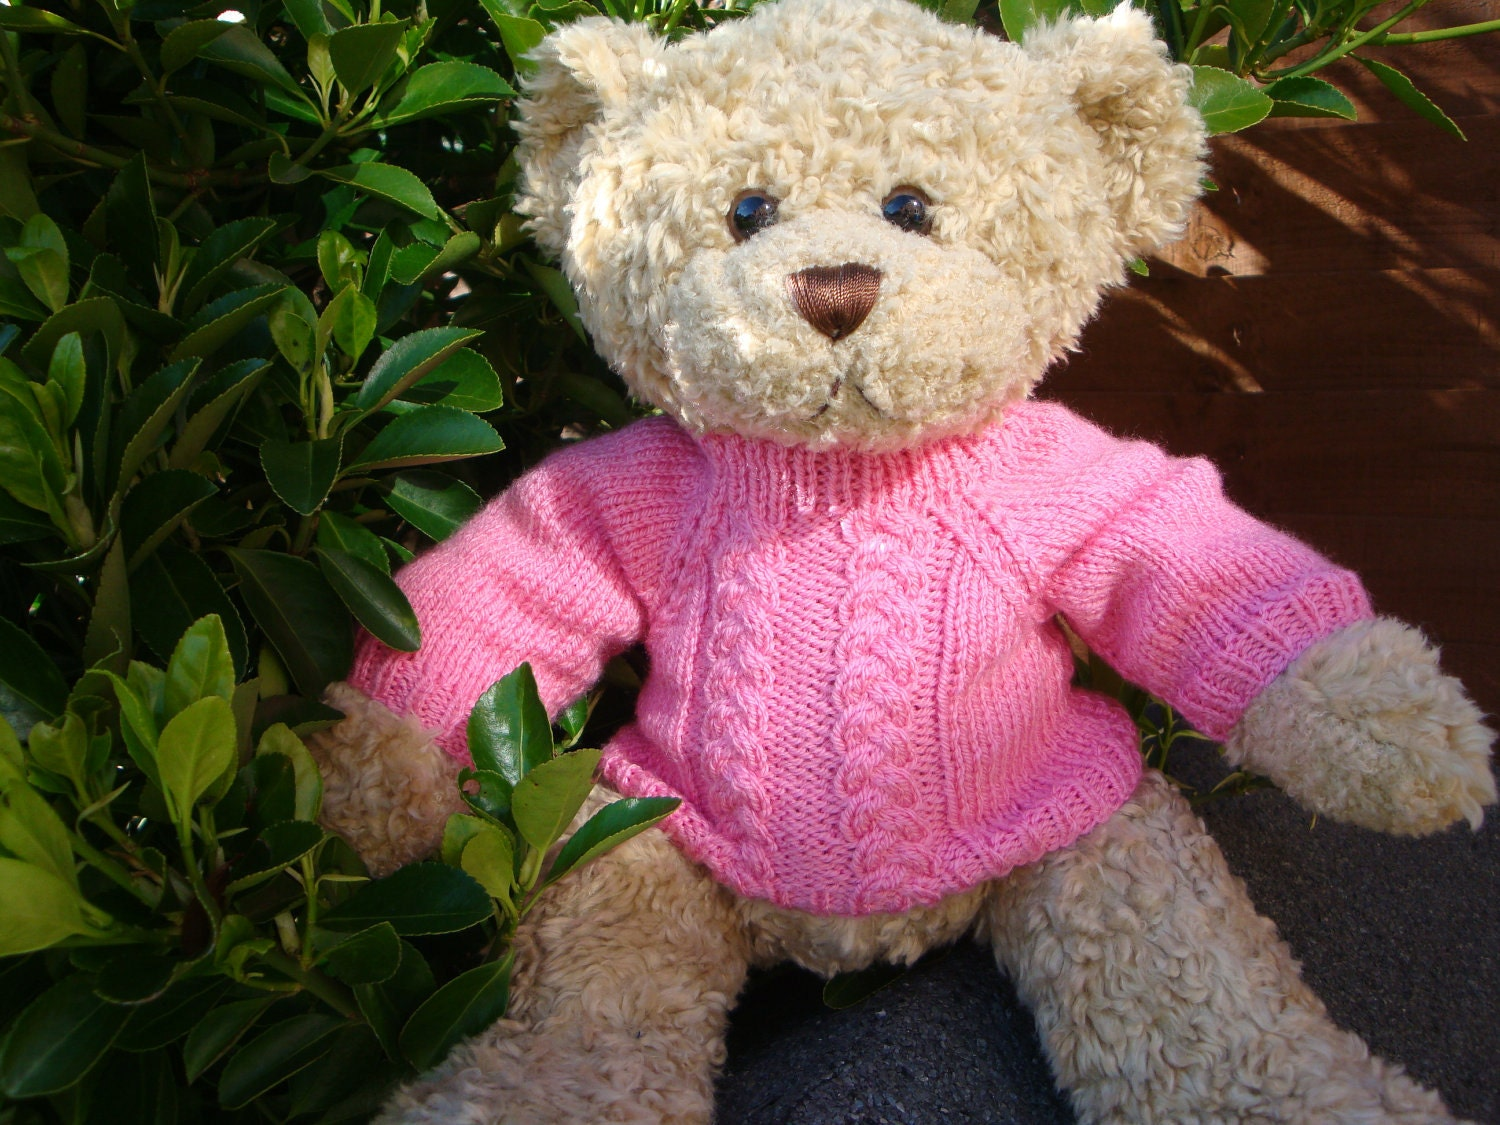 Knitting Patterns For Teddy Bears : Knitting Pattern Teddy Bear Sweater for Build a by ...